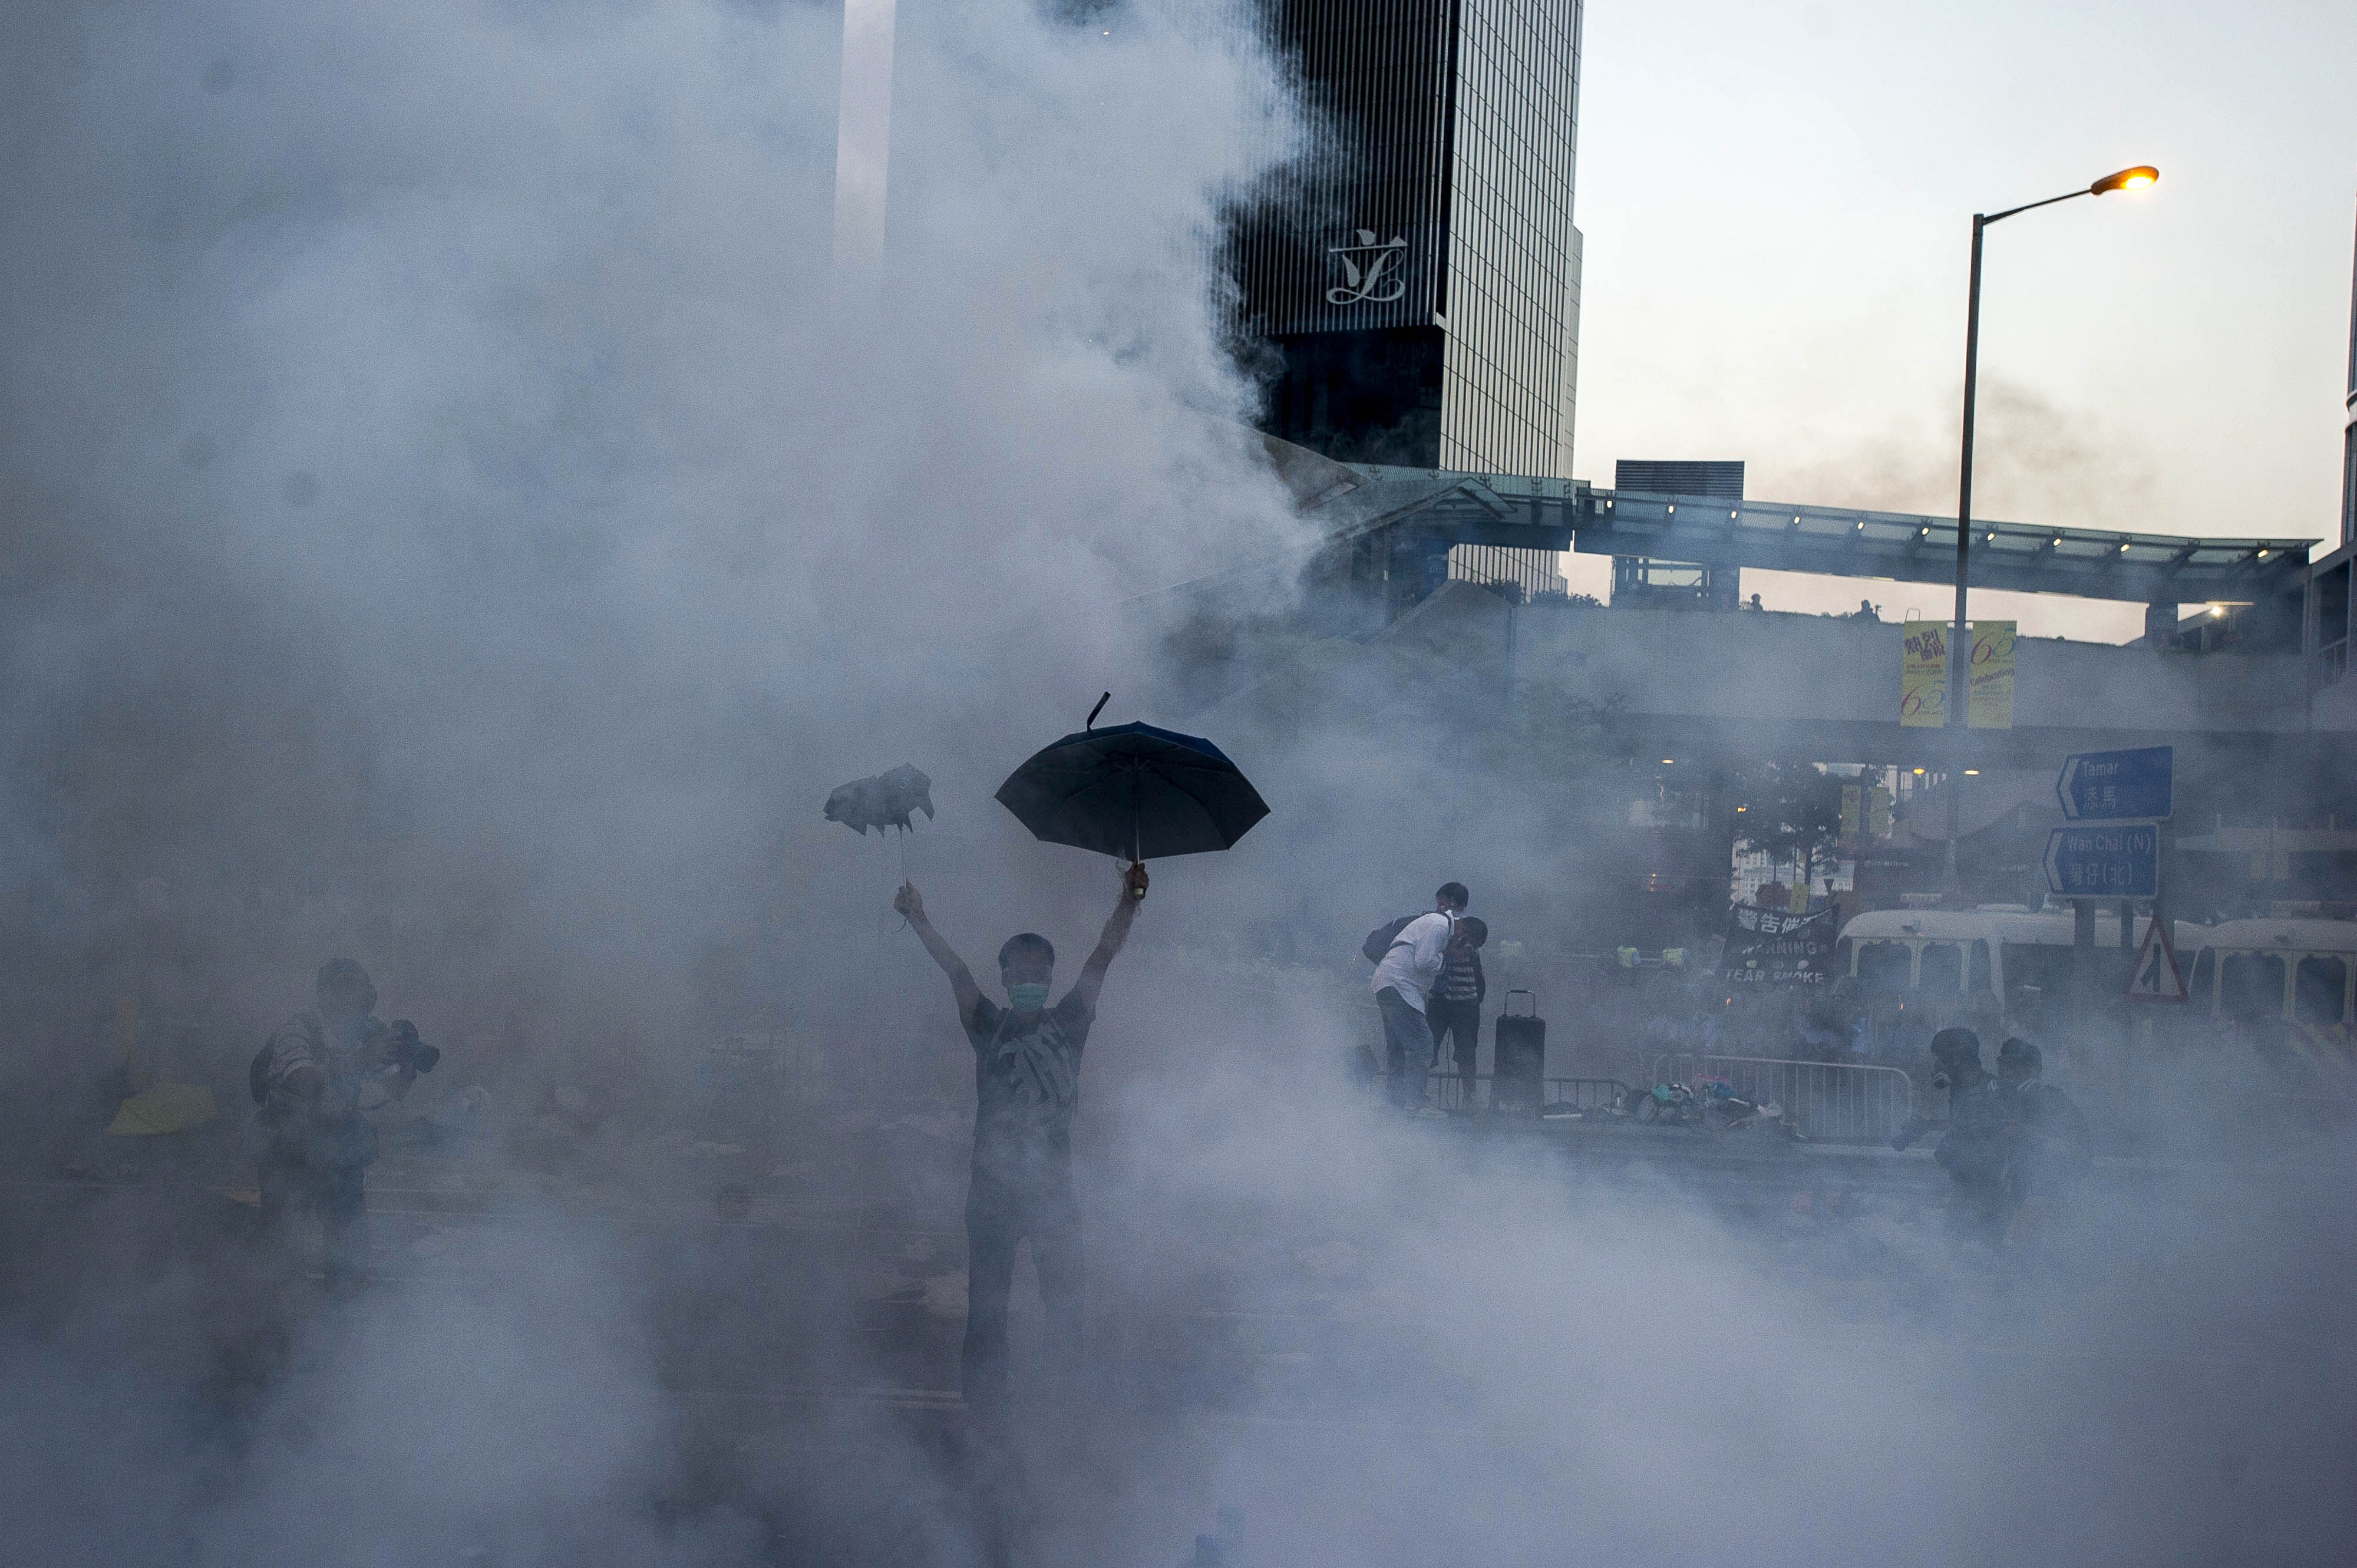 A pro-democracy demonstrator holds a defiant umbrella aloft after police fire tear gas near the Hong Kong government headquarters in Hong Kong on Sept. 28, 2014